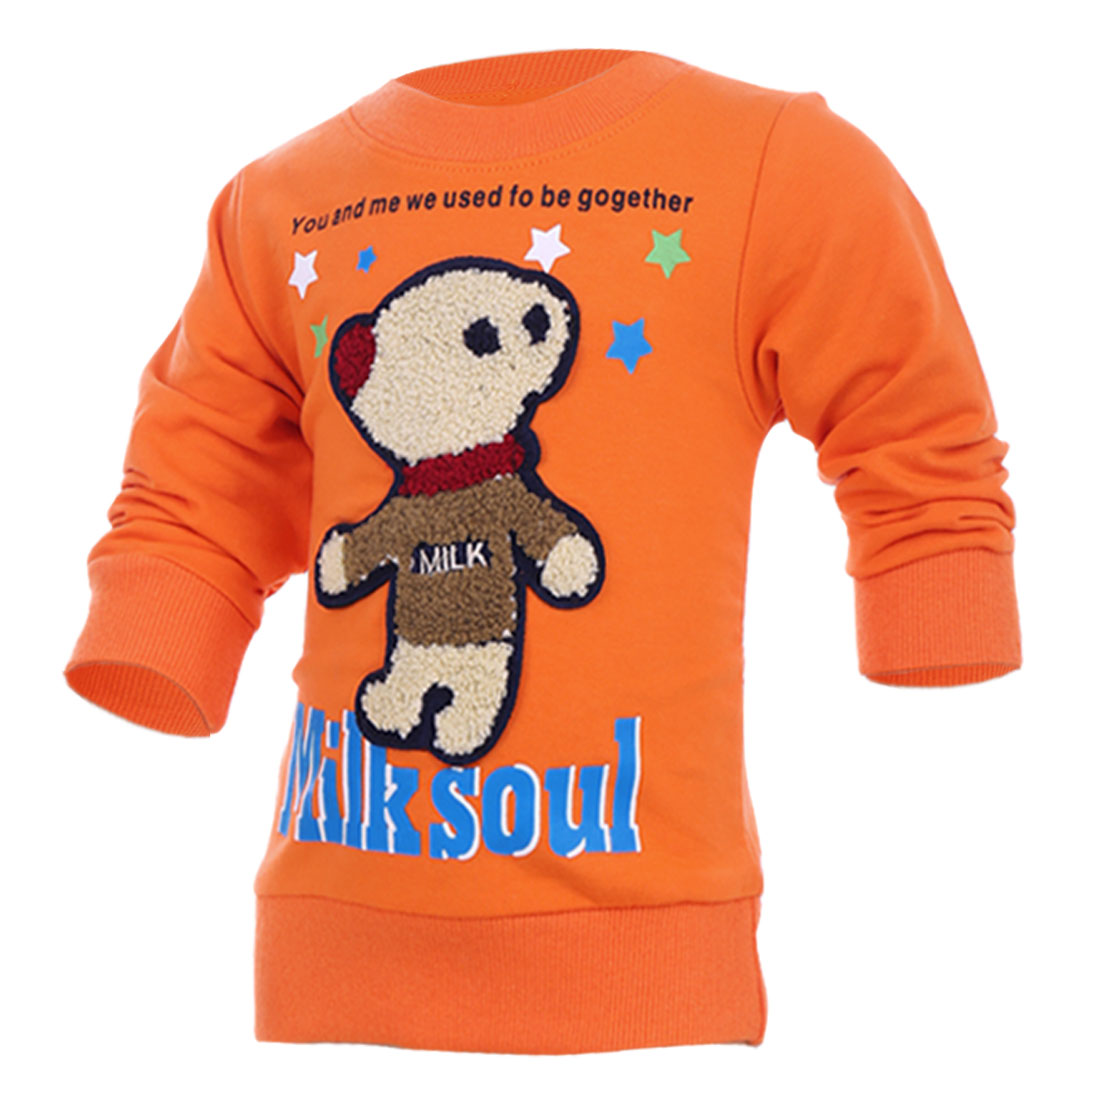 Children Chic Round Neck Long Sleeve Orange Spring Casual Top Shirt 4T